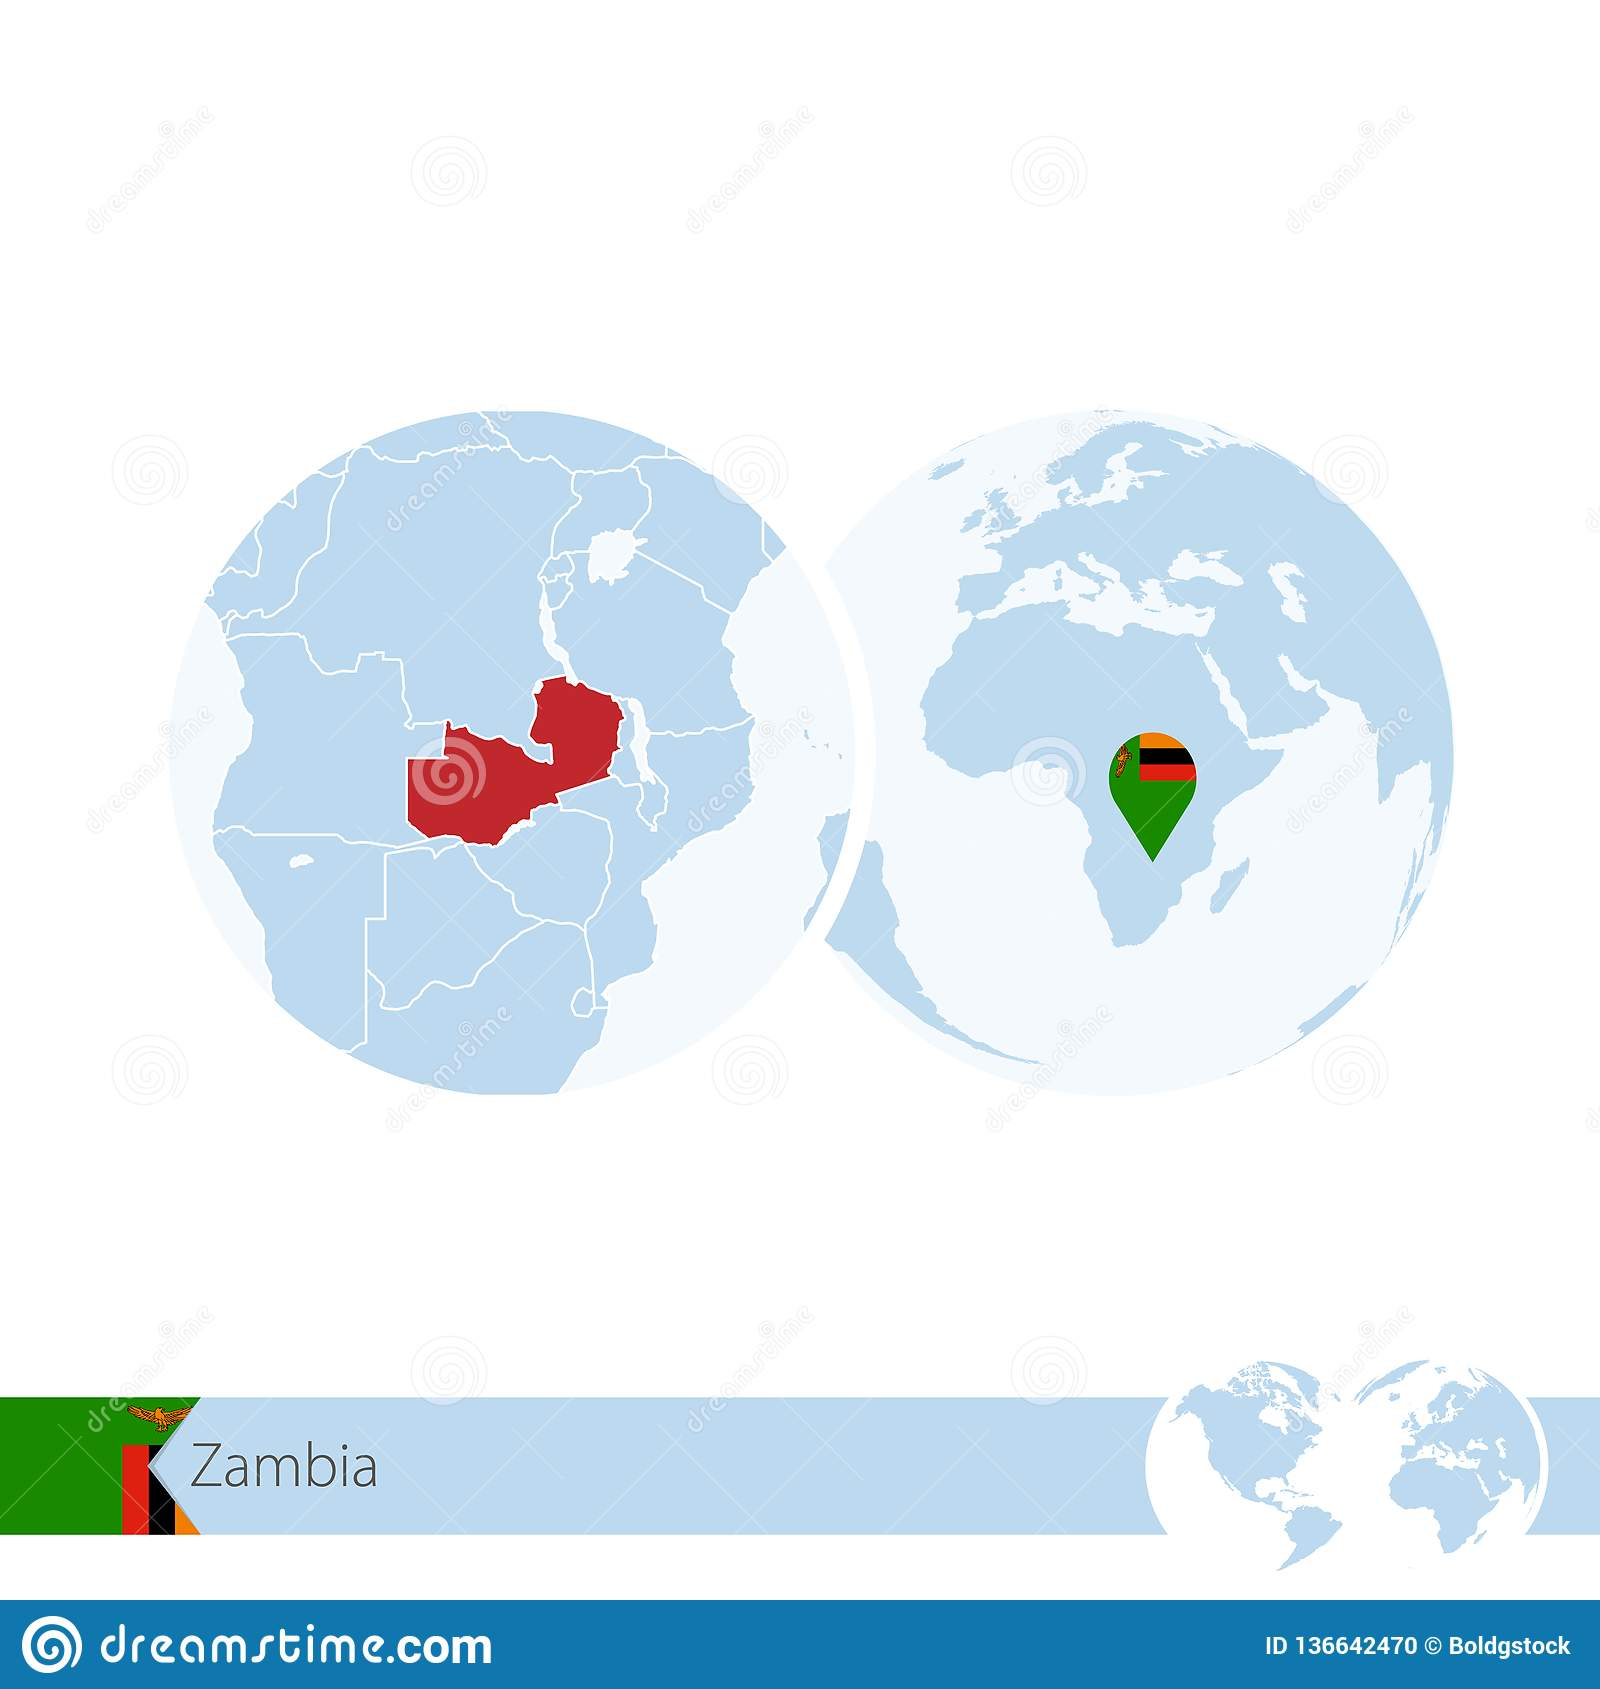 Zambia On World Globe With Flag And Regional Map Of Zambia Stock ...